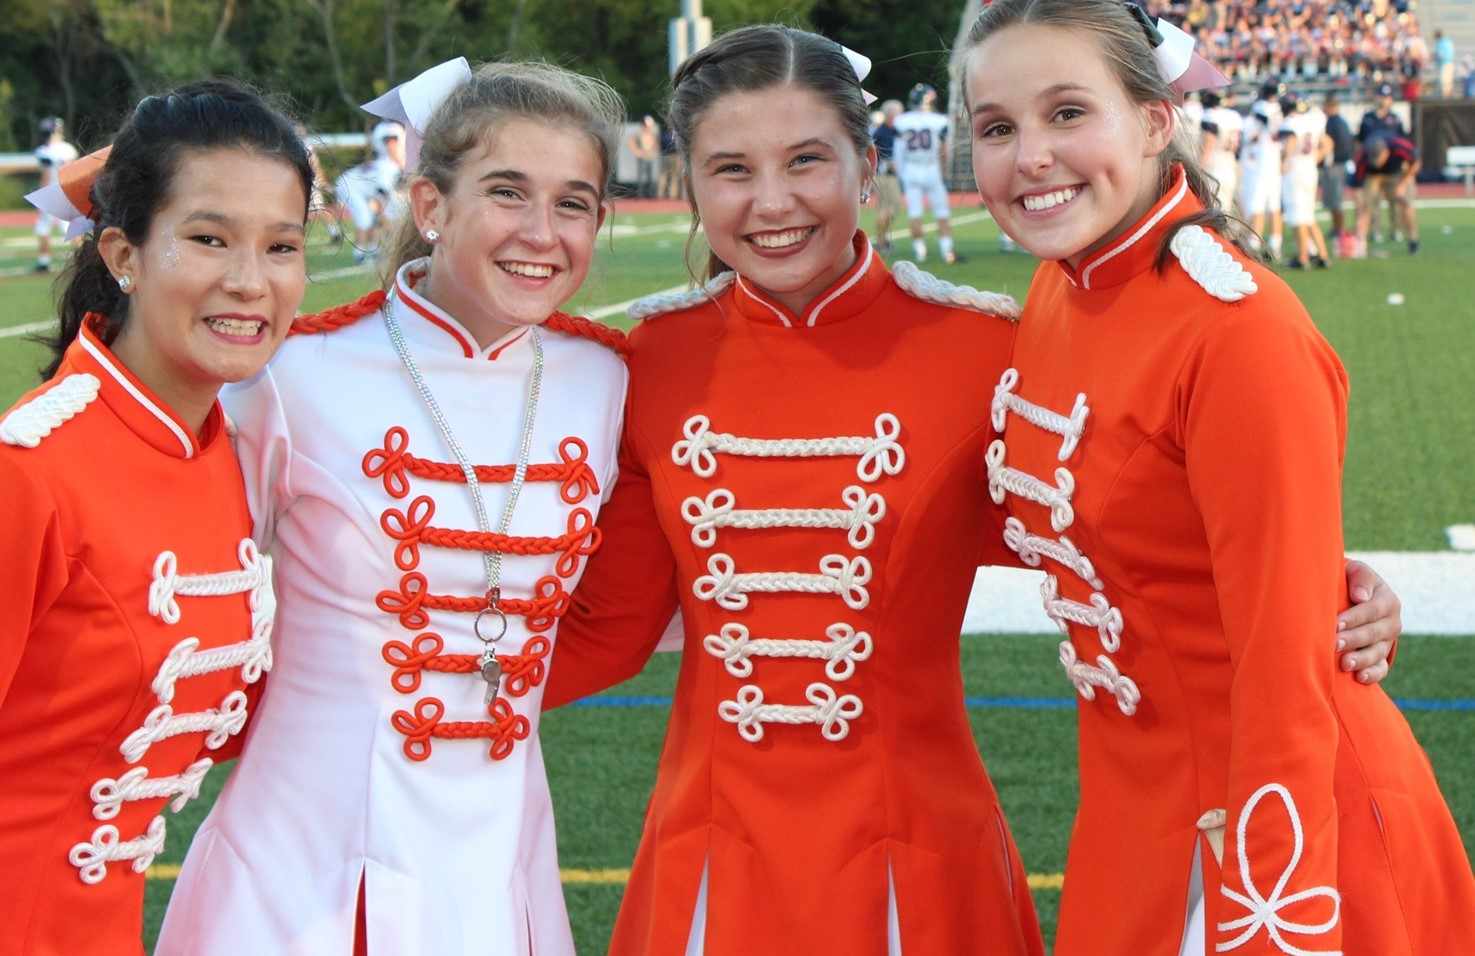 Four of the BPHS Majorettes